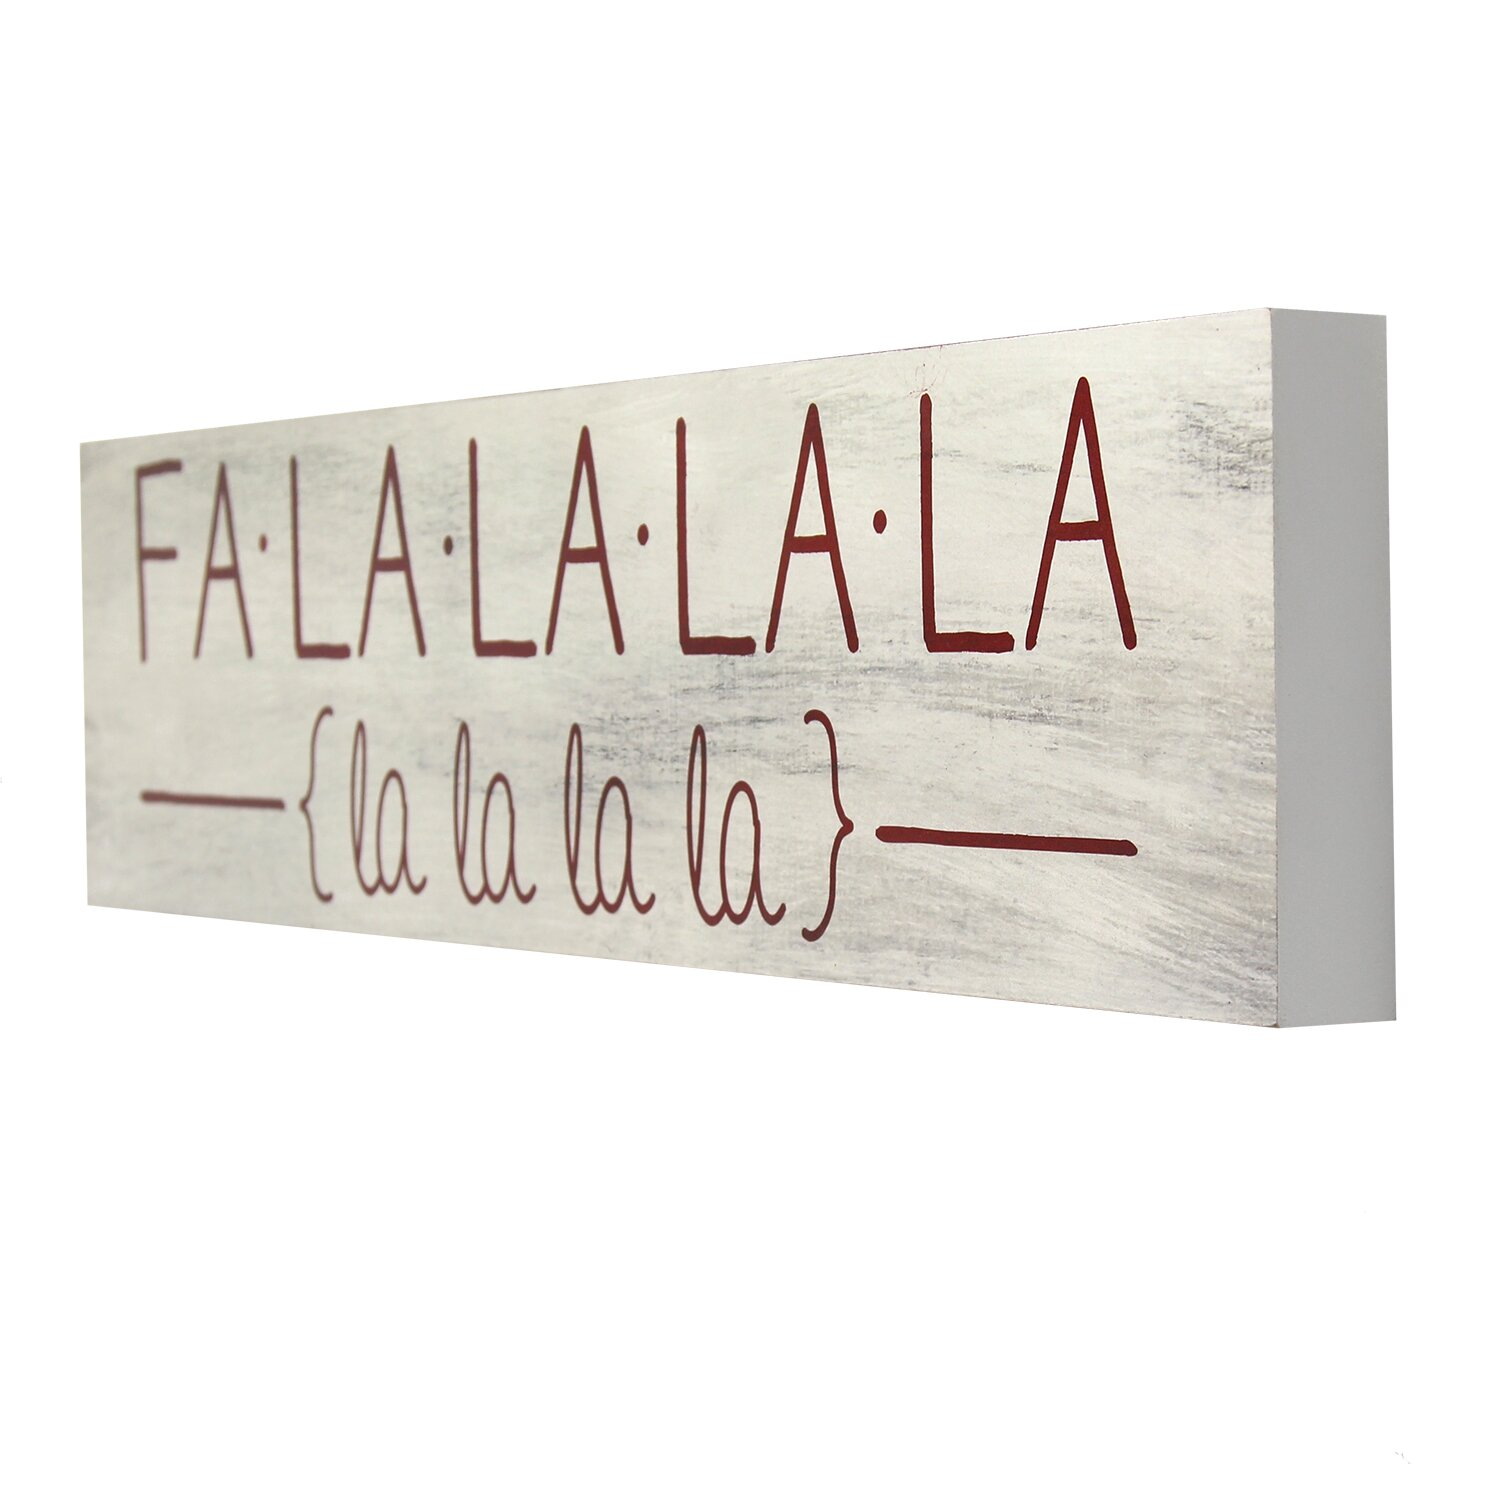 Stratton home decor 39 falalalala 39 textual art reviews for Stratton house